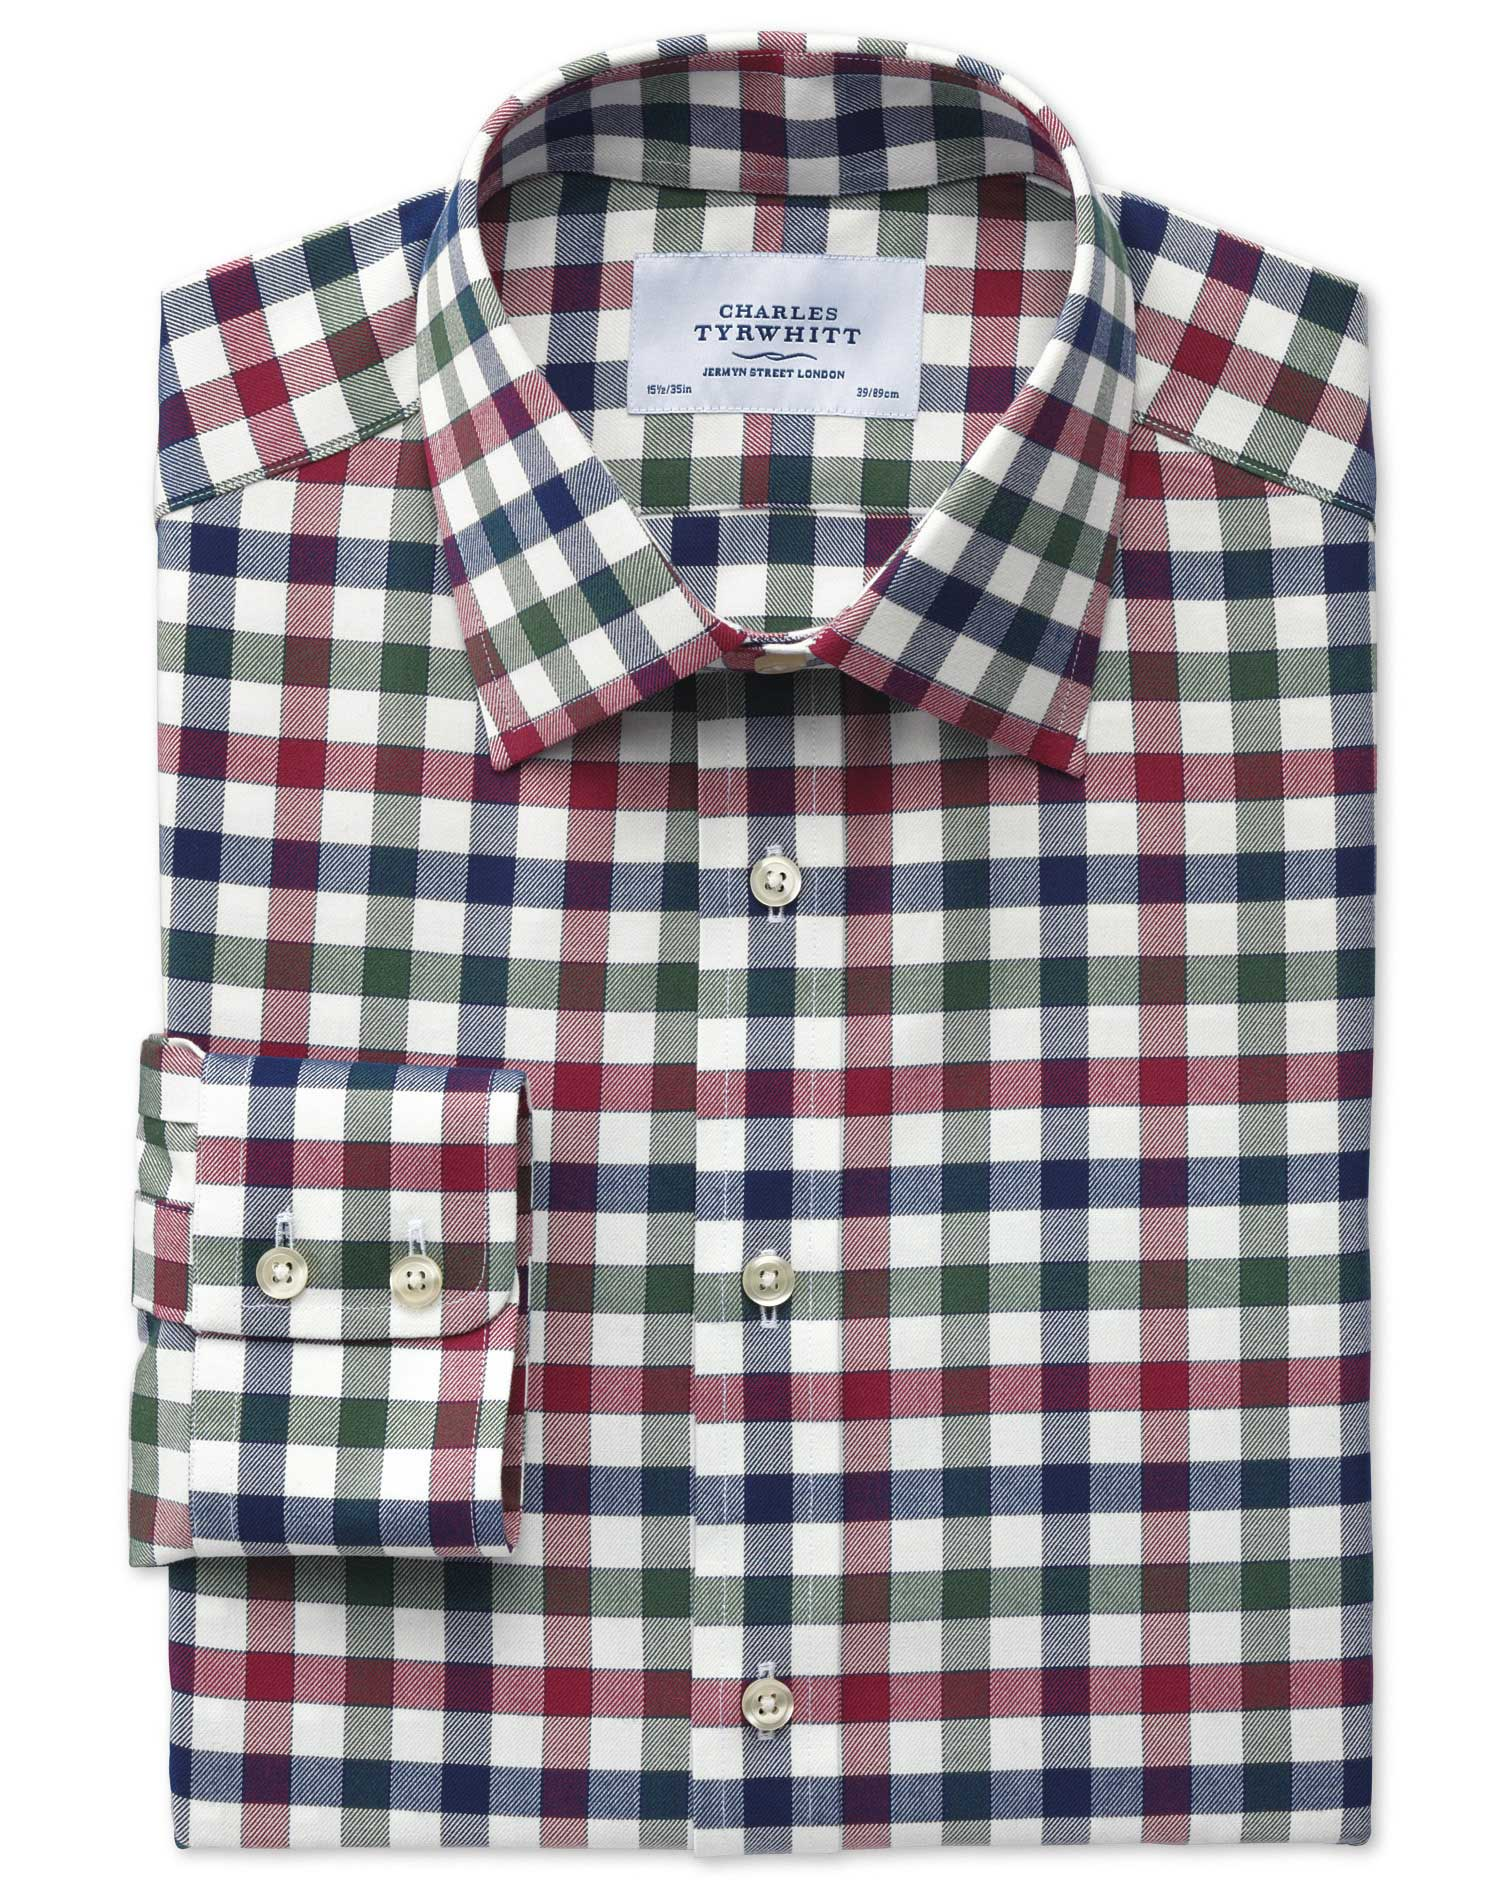 Slim Fit Country Check Navy and Berry Cotton Formal Shirt Single Cuff Size 18/35 by Charles Tyrwhitt